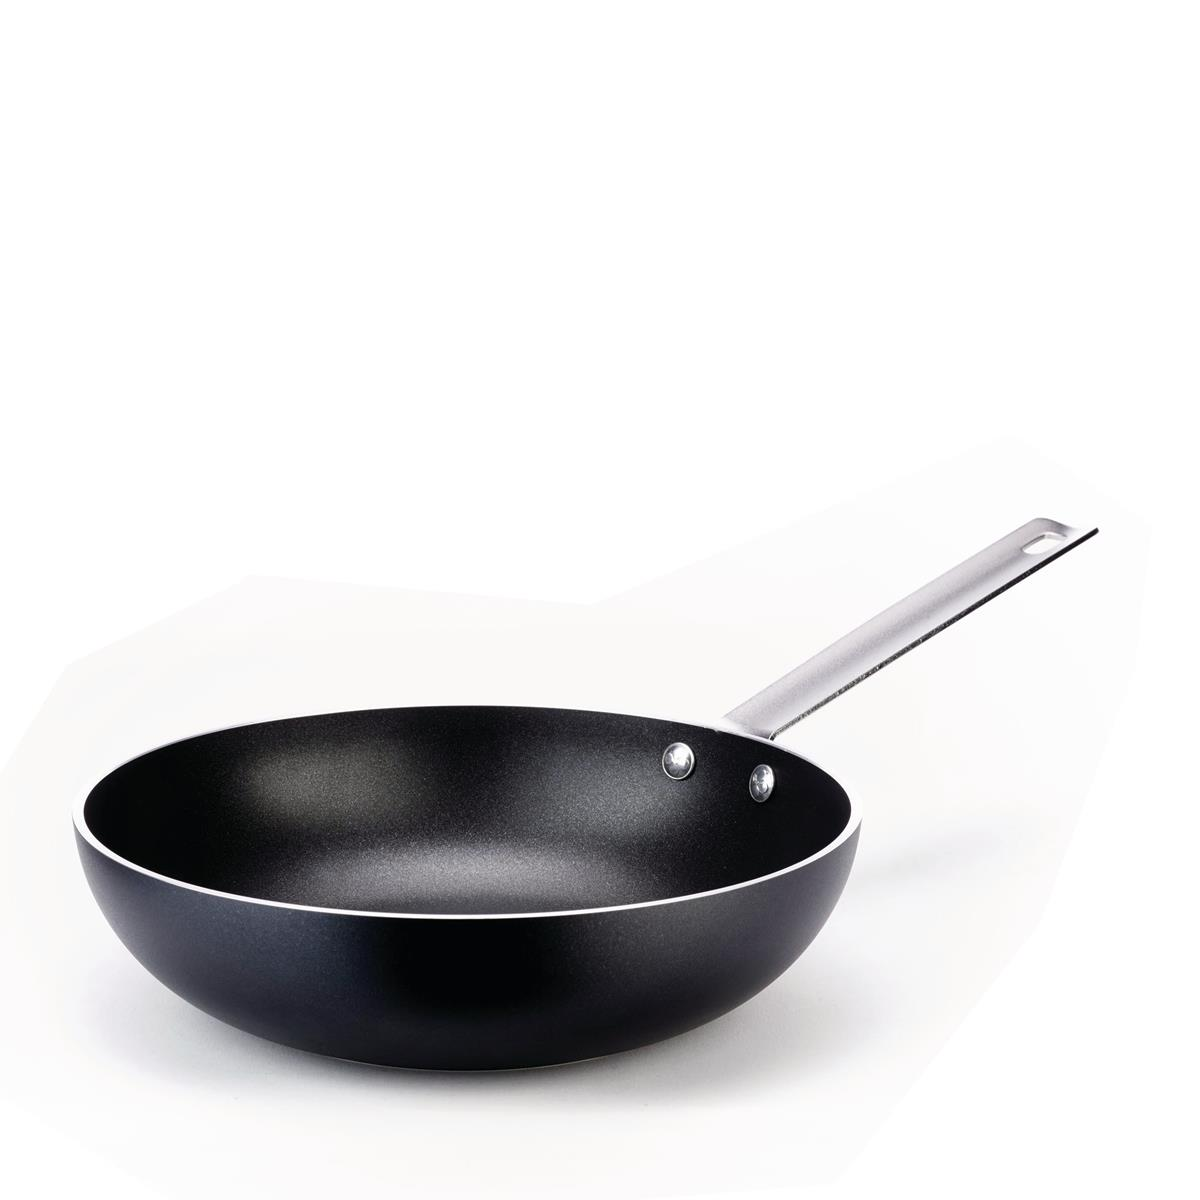 Alessi-Mami 30 High frying pan in non-stick aluminum, black suitable for induction